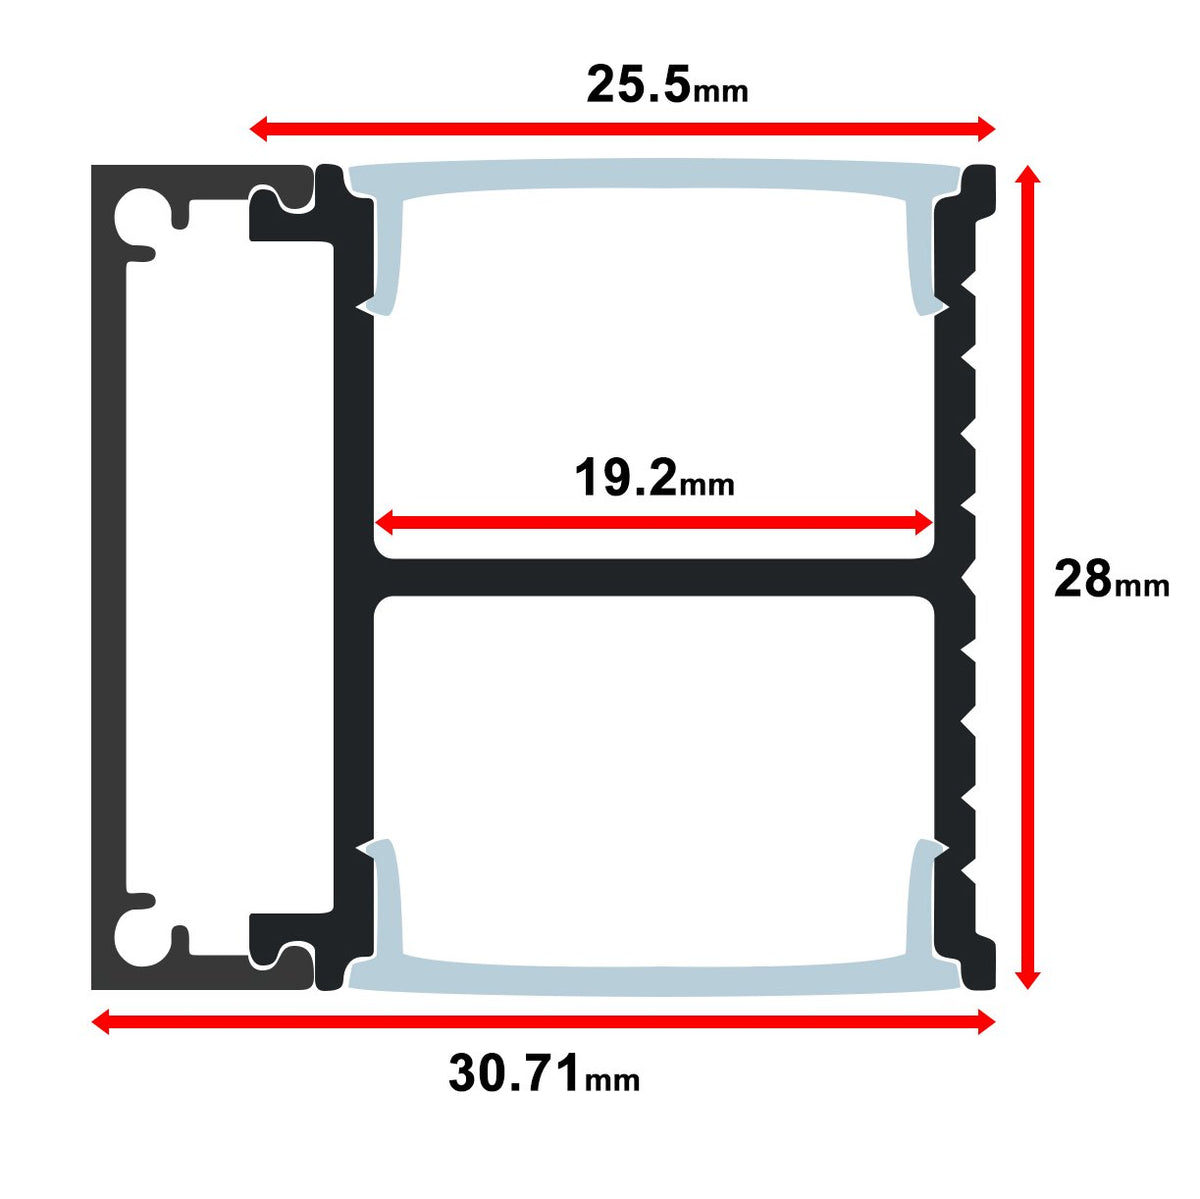 MOSS-ALQ-3028 Mounting Channel - 1 Meter